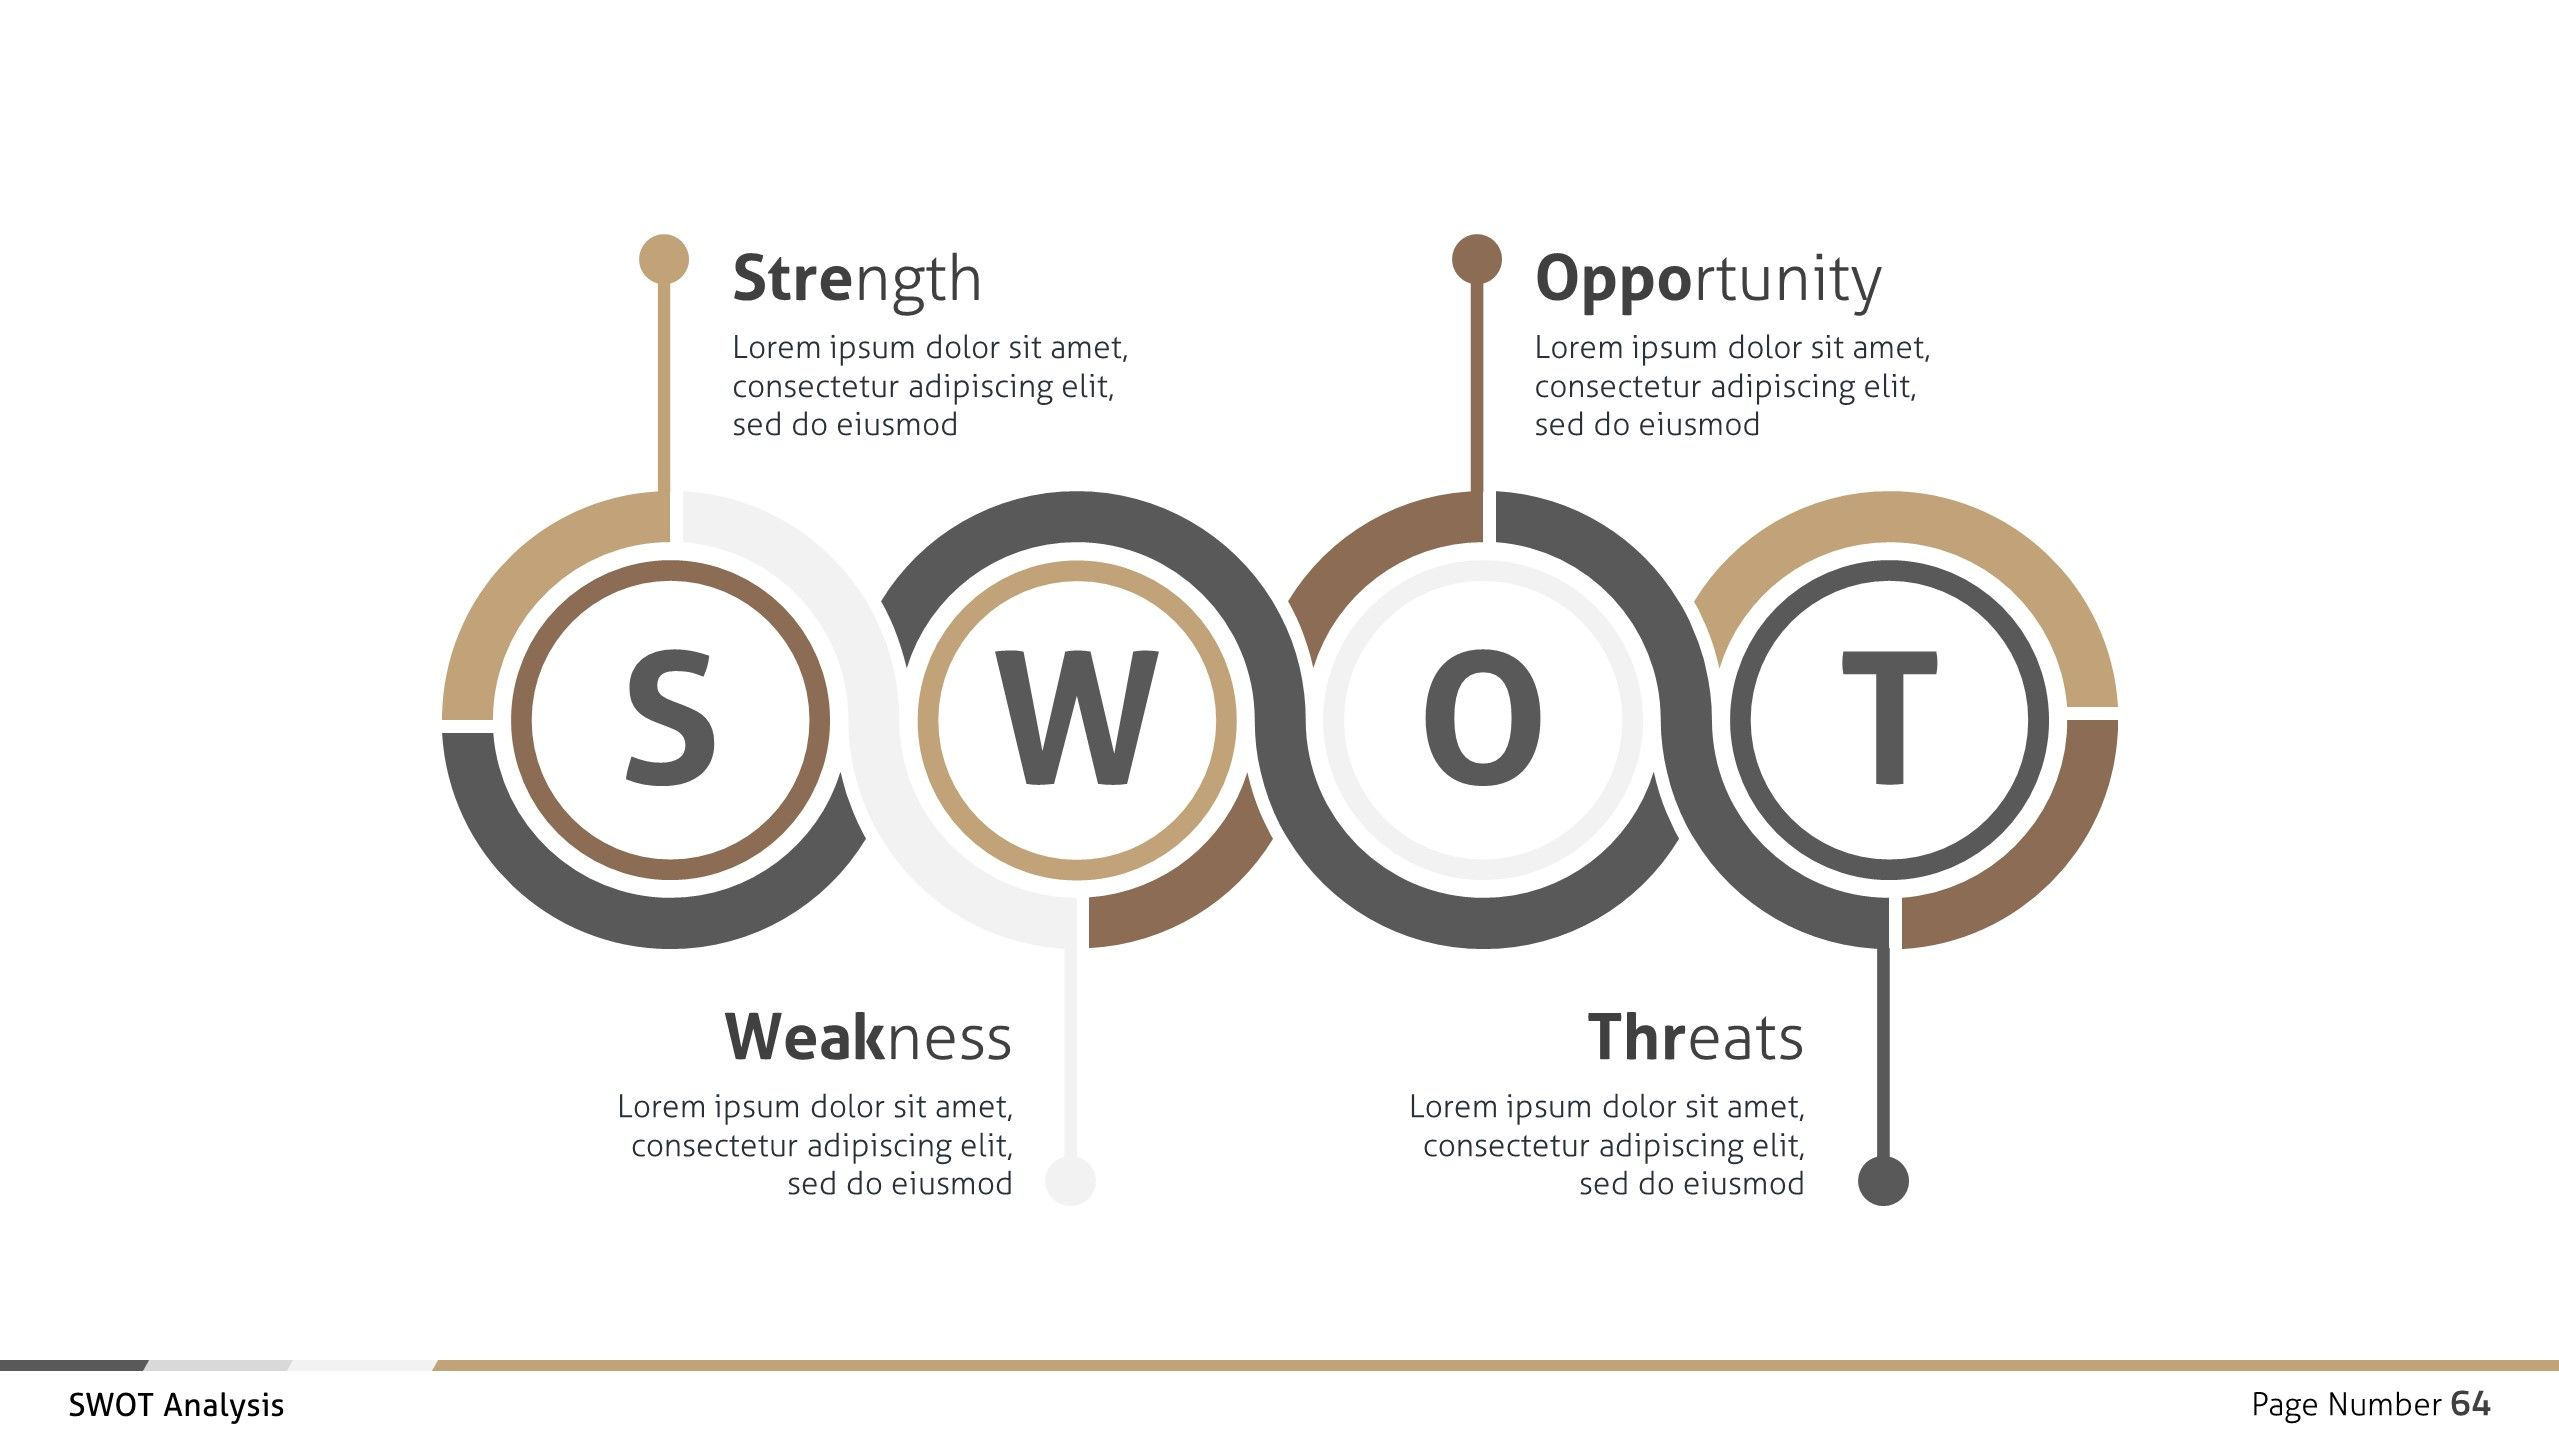 Swot Analysis Business Infographic Presentation Swot Analysis Business Infographic Swot Analysis Template